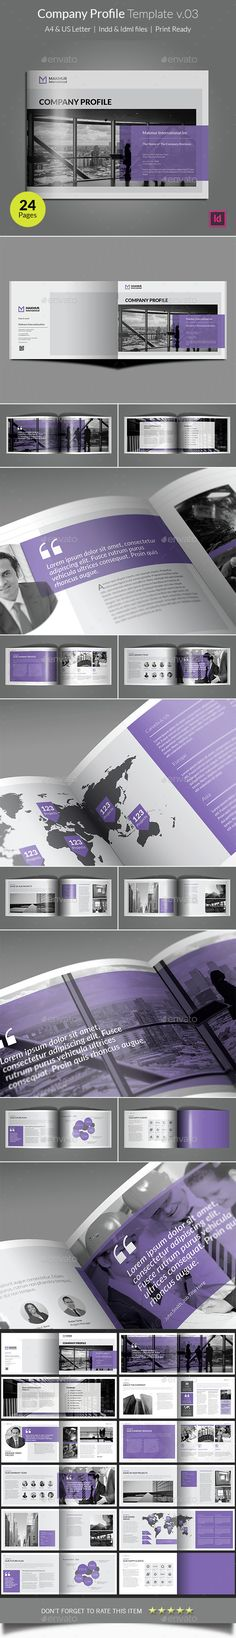 24 Pages Company Profile Brochure Template InDesign INDD. Download here: http://graphicriver.net/item/company-profile-template-v03/15311346?ref=ksioks